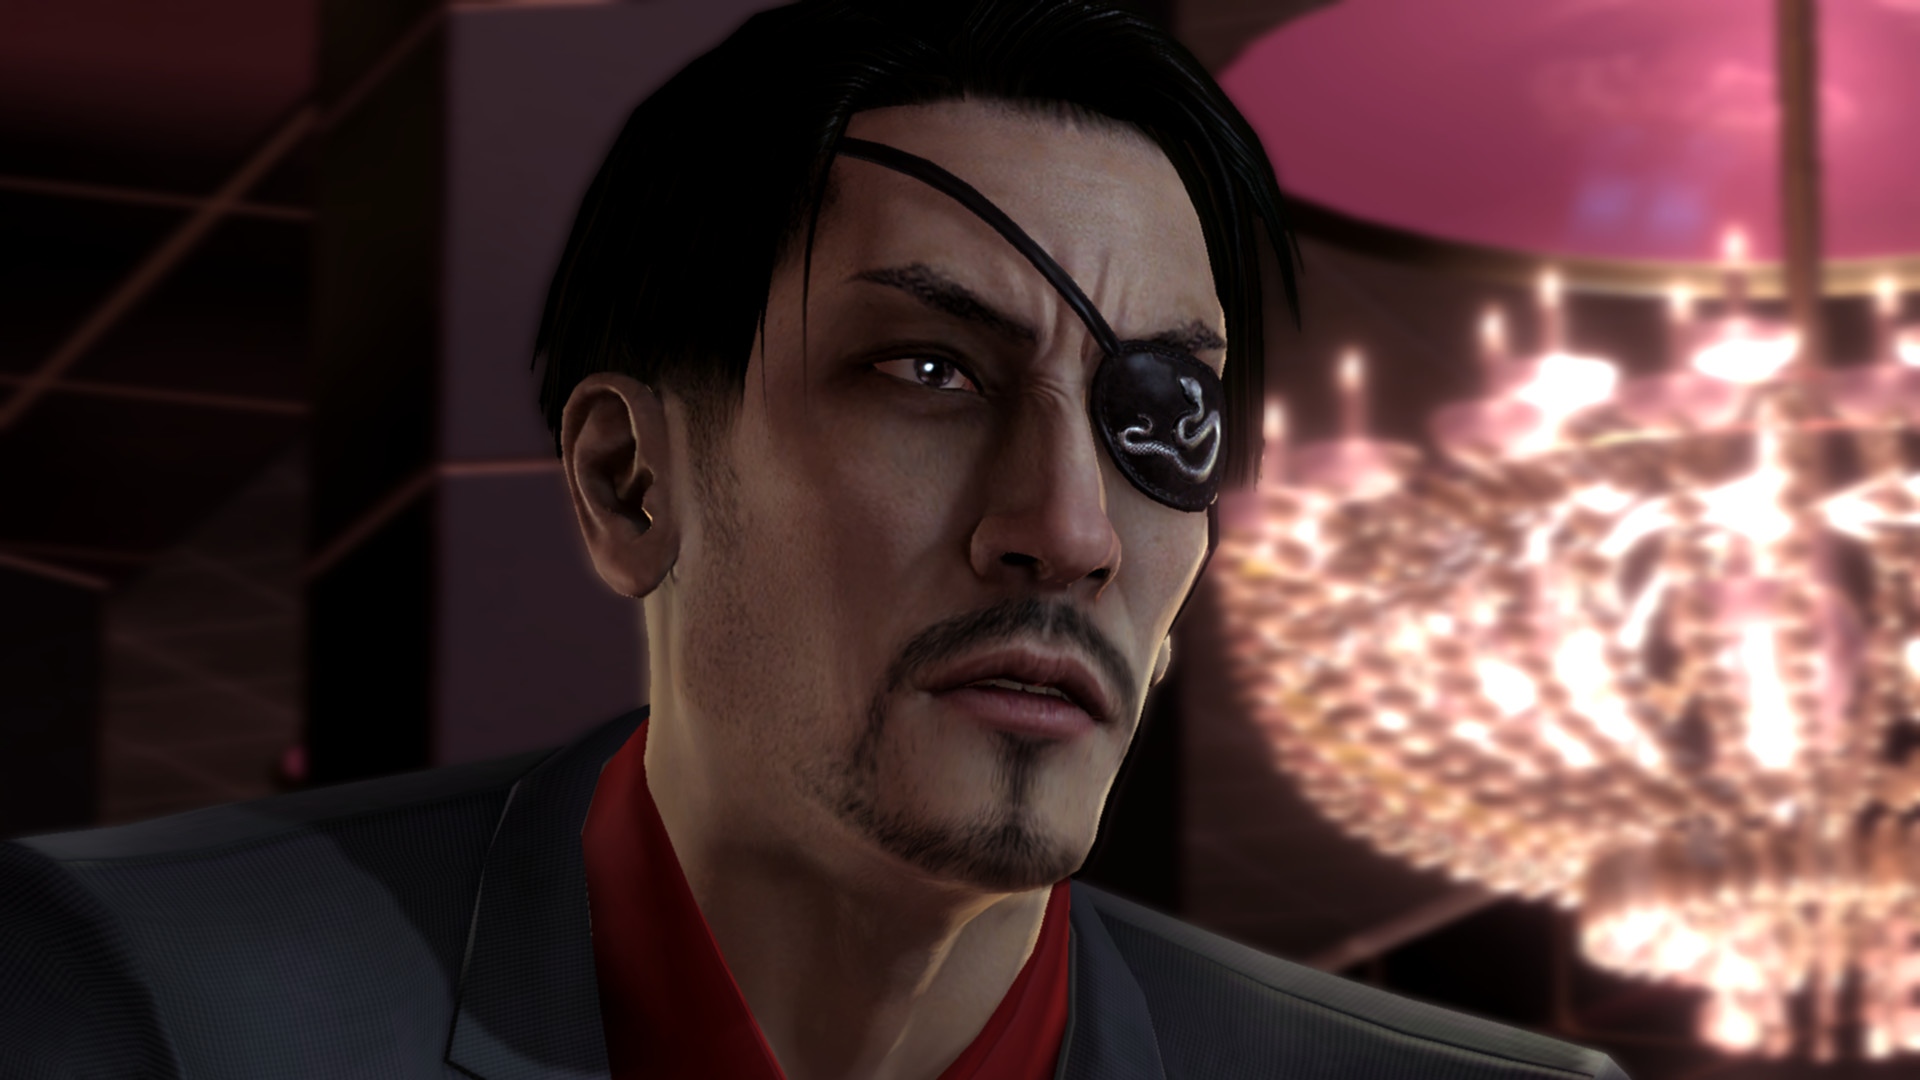 yakuza-4-remastered-pc-screenshot-04